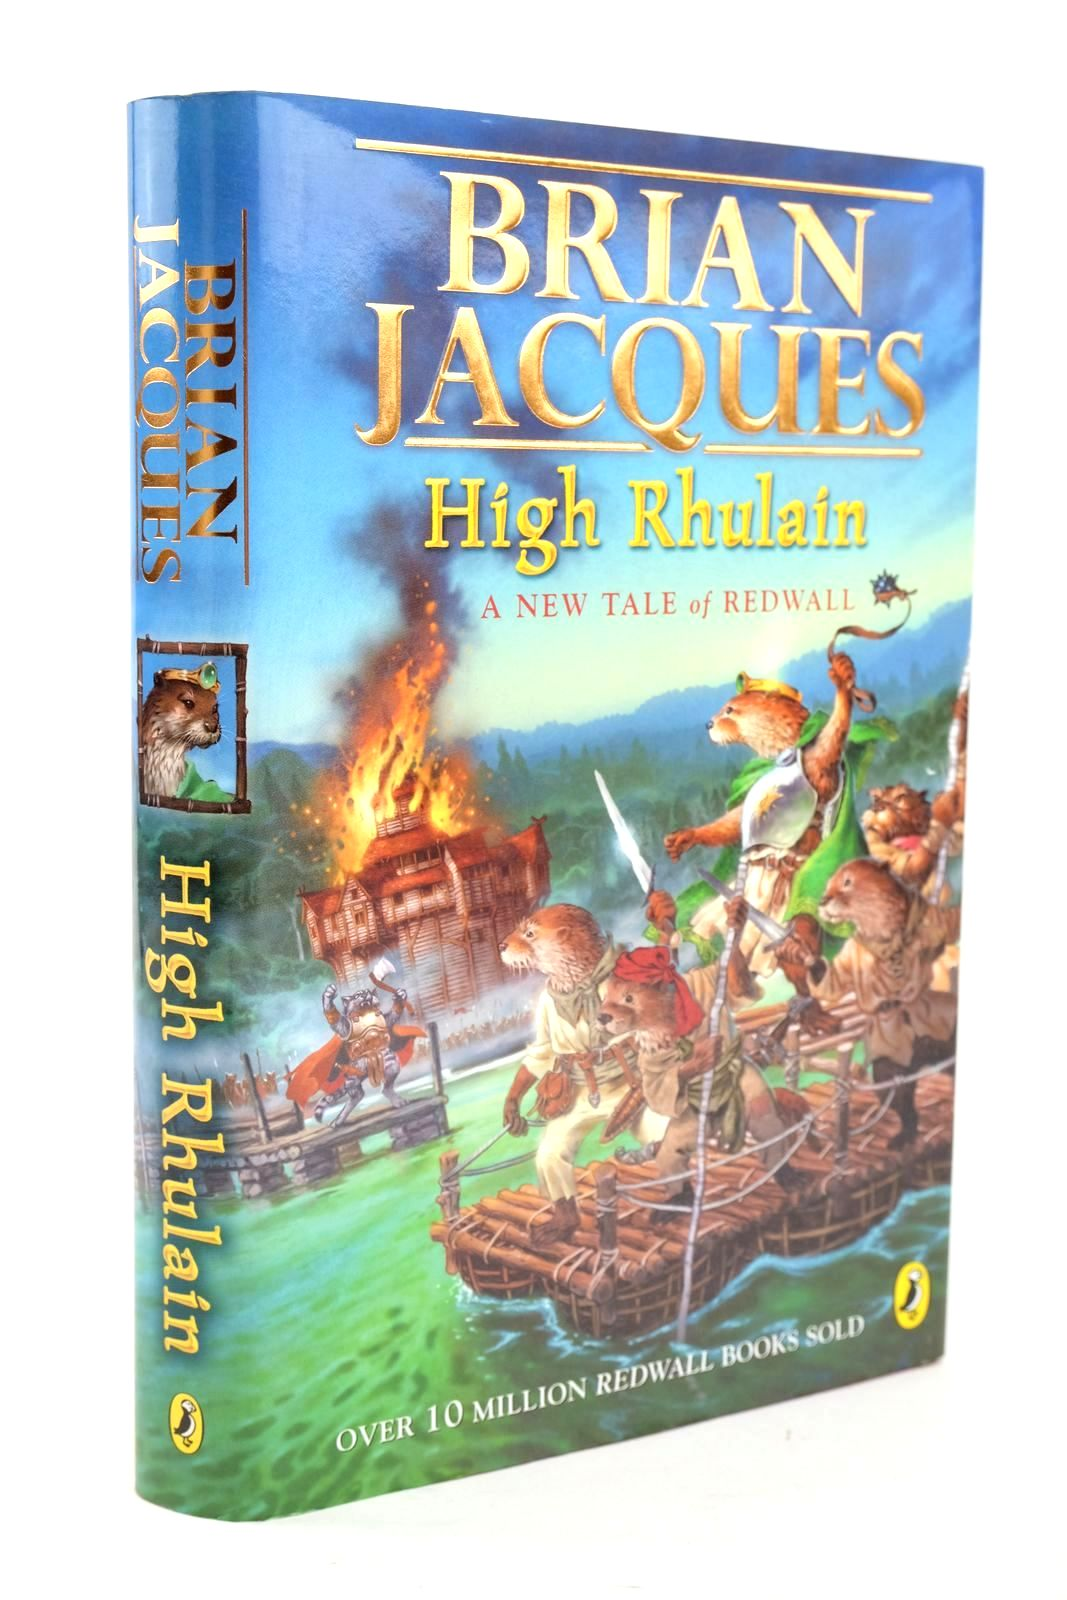 Photo of HIGH RHULAIN written by Jacques, Brian illustrated by Elliot, David published by Puffin Books (STOCK CODE: 1319392)  for sale by Stella & Rose's Books